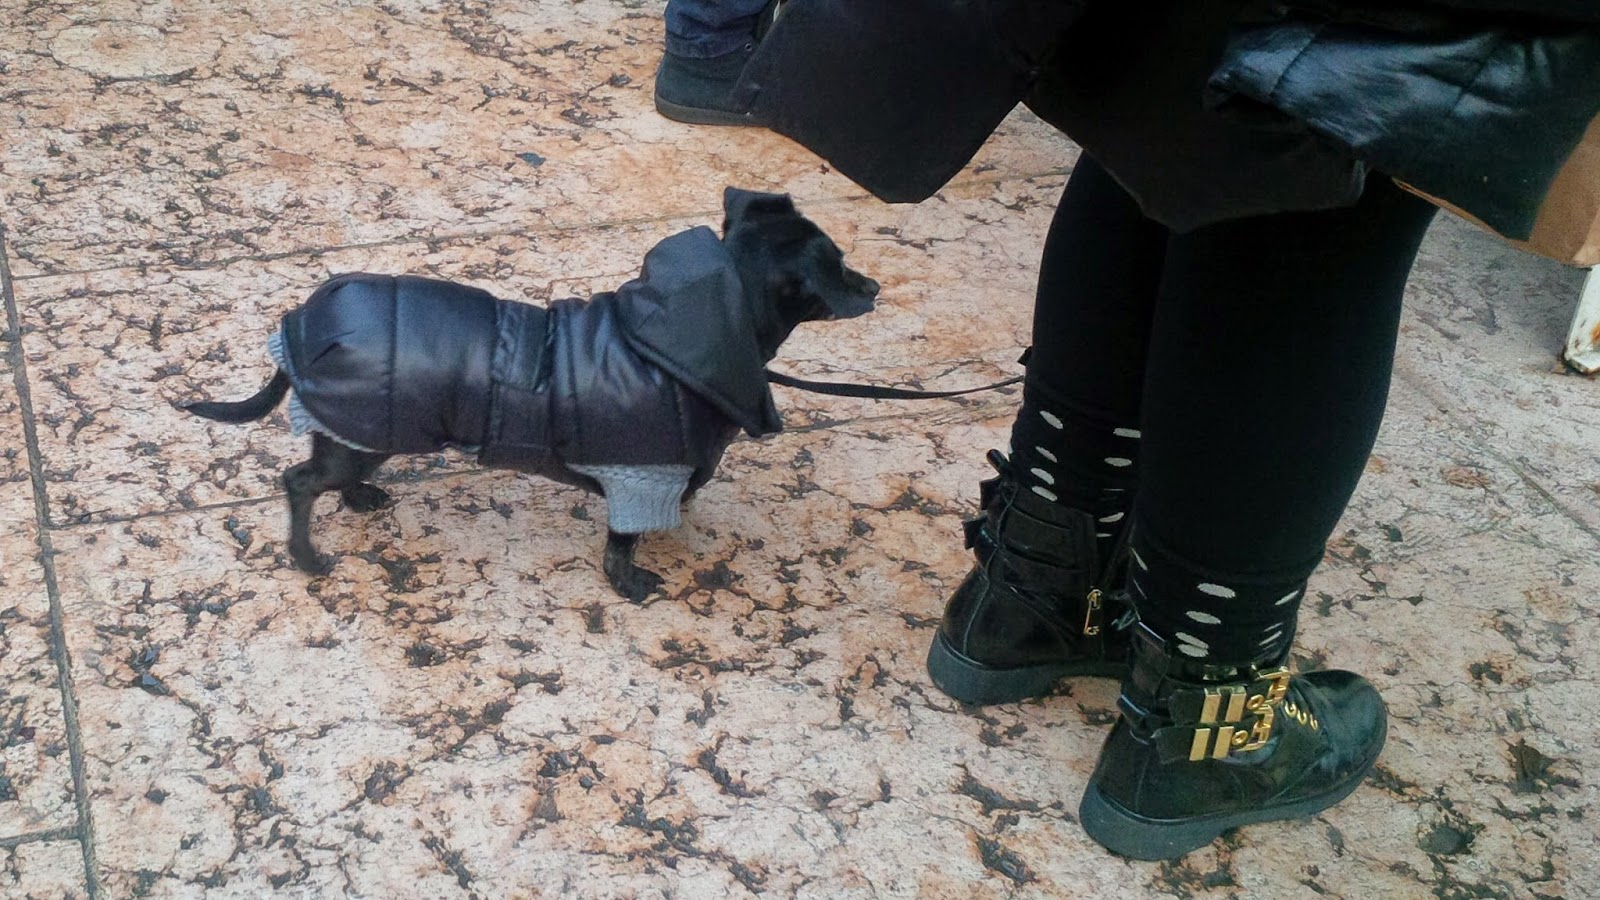 A dog is wearing a jumper and a puffa jacket to keep warm